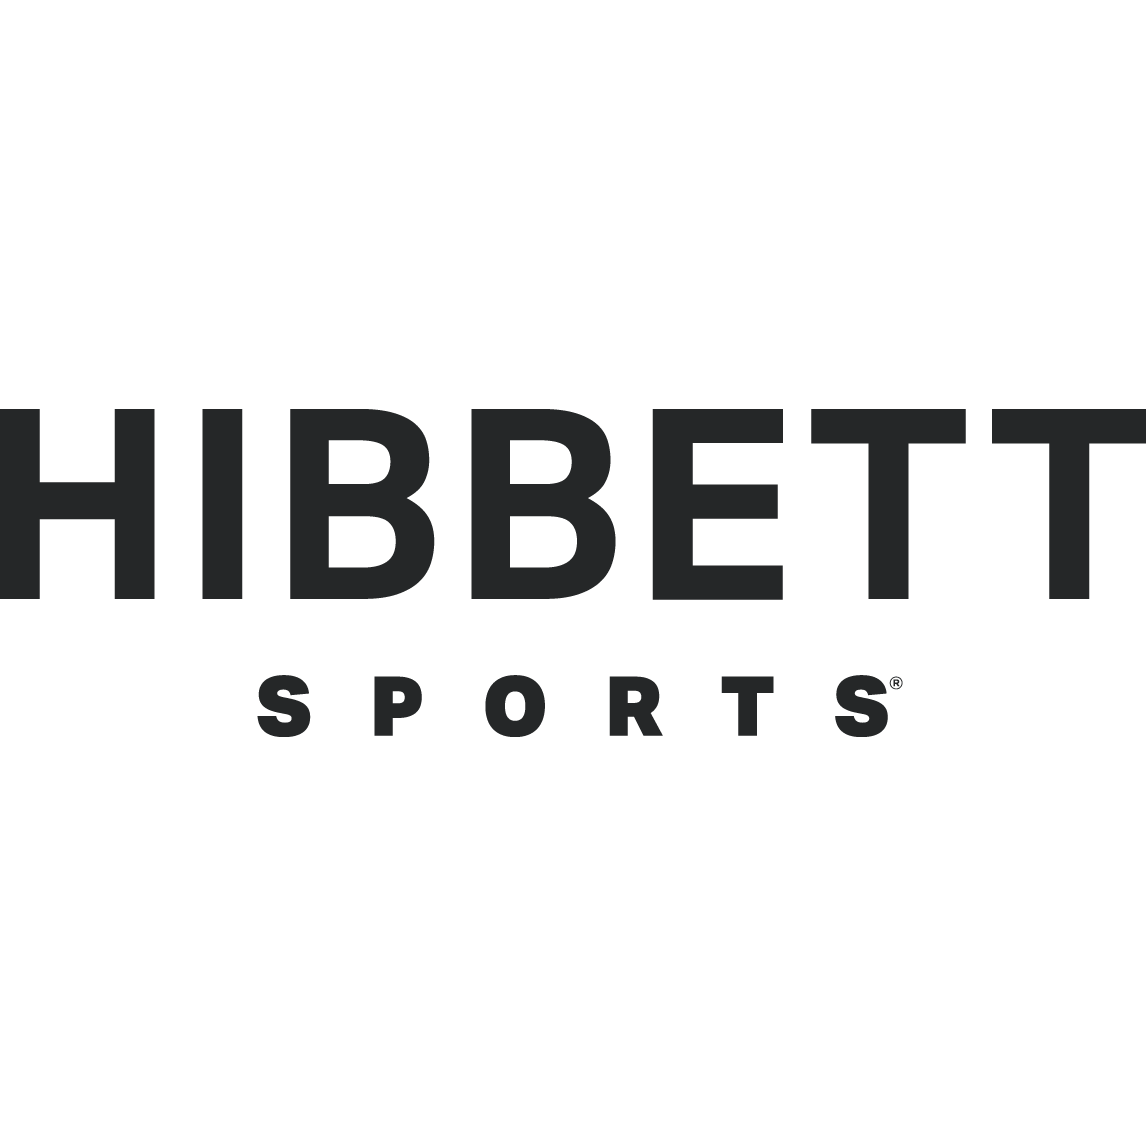 Hibbett Sports - Kingsport, TN - Shoes